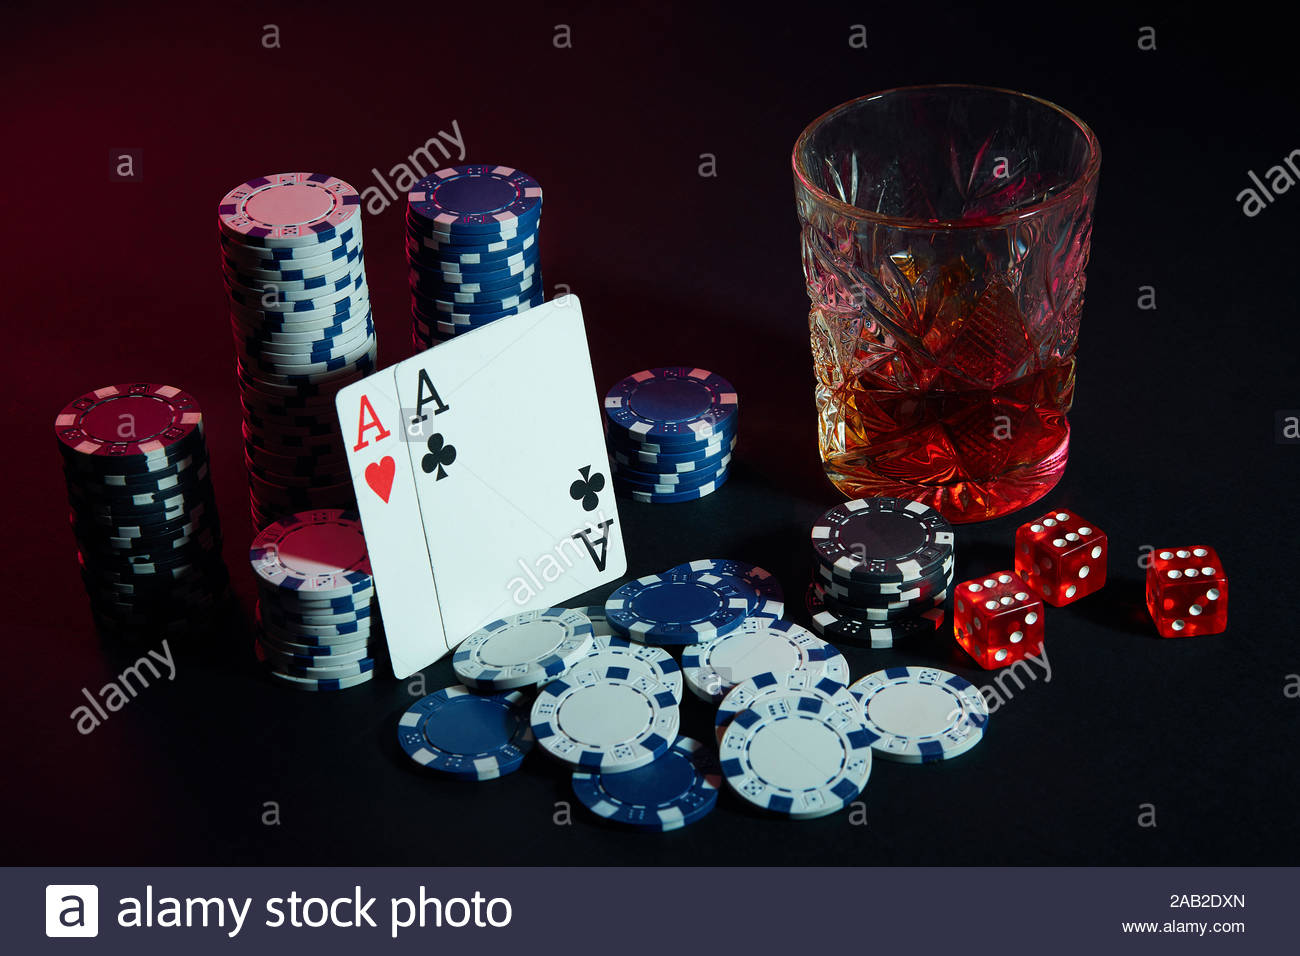 To play a new updation casino game, the online will best area